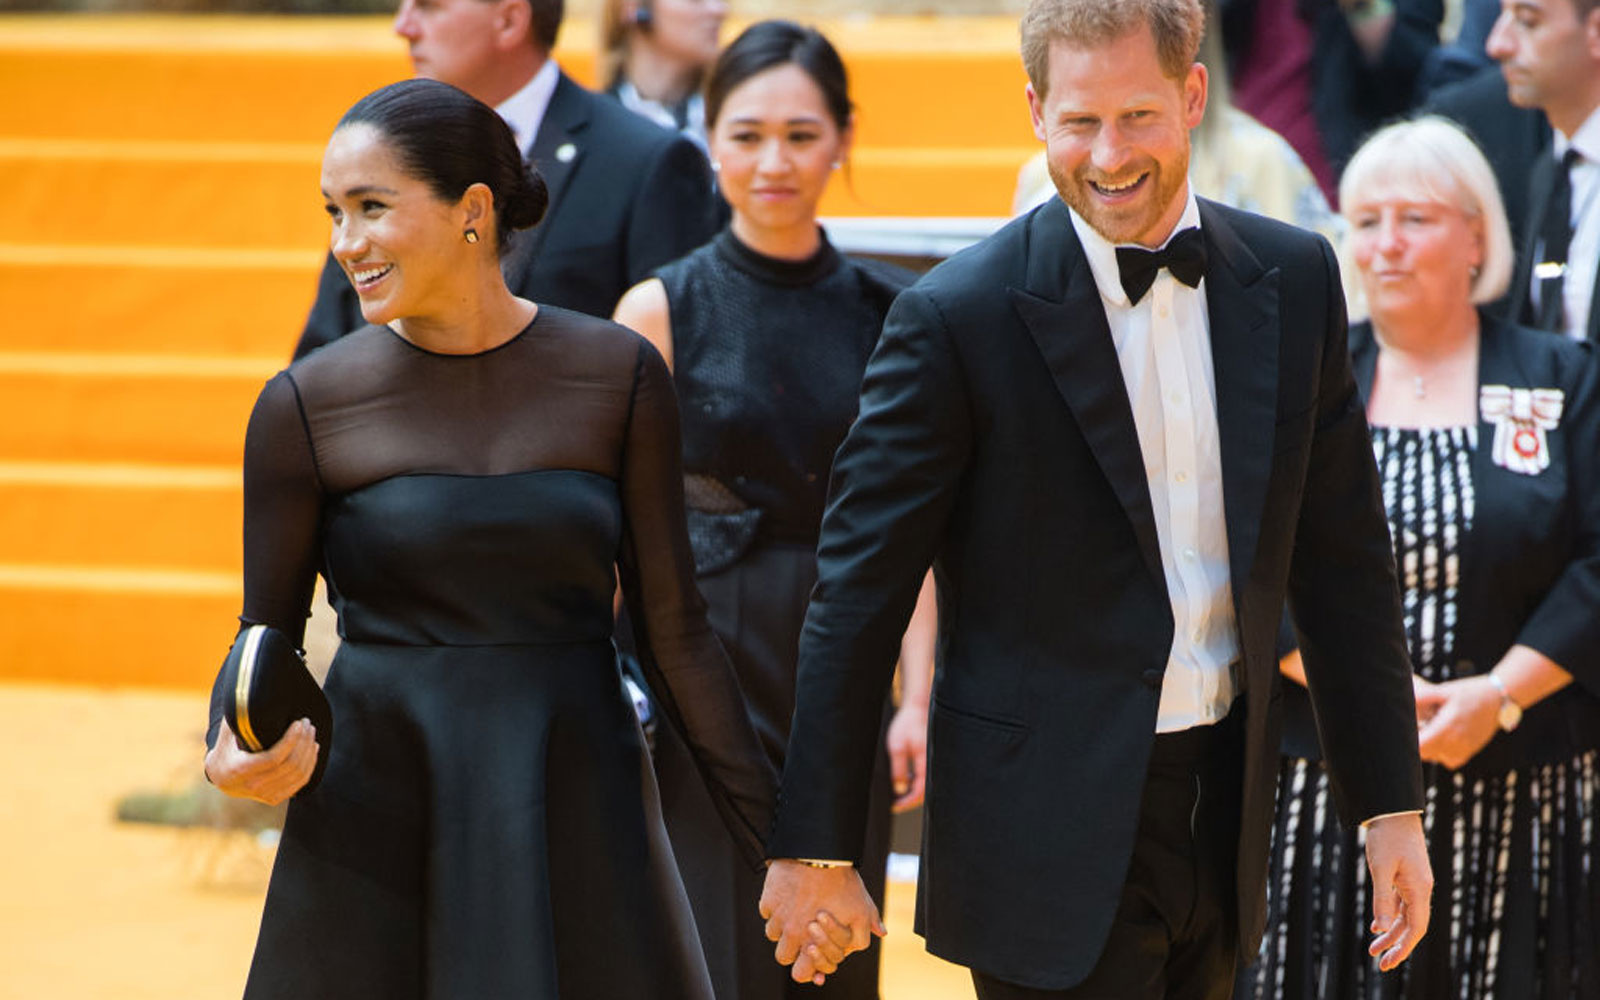 Meghan Markle and Prince Harry want you to tell them who to follow on Instagram